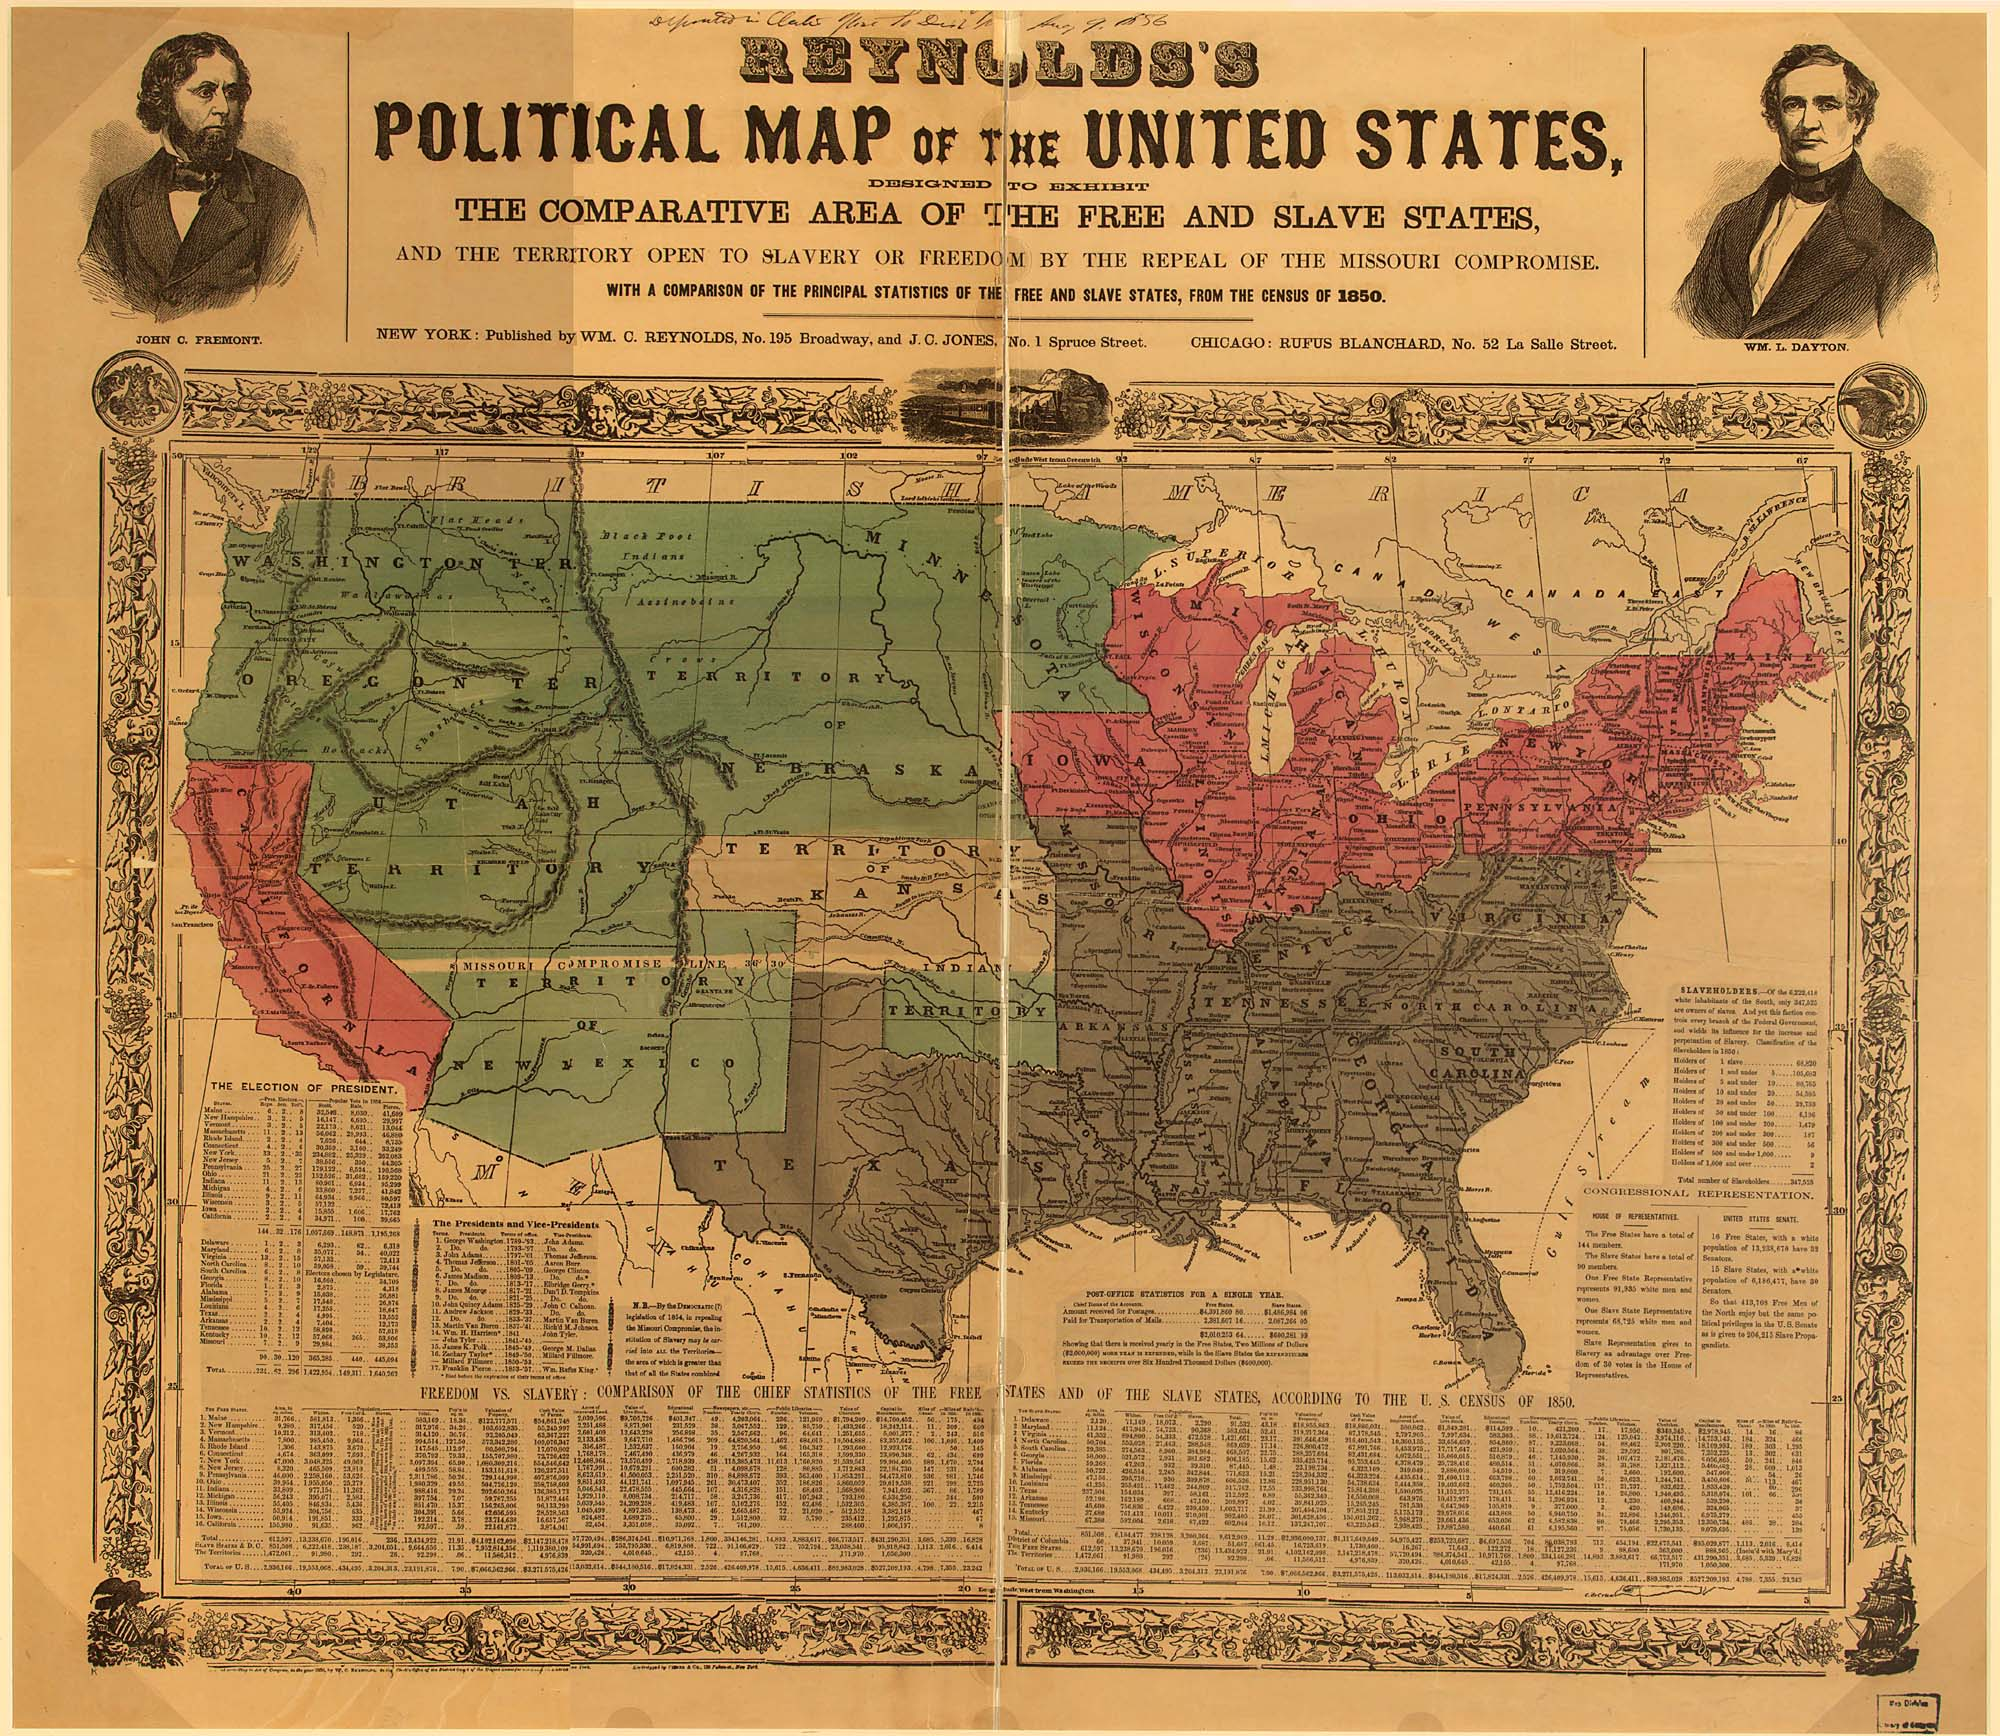 Political Map of the U.S. - Free vs. Slave States, 1850